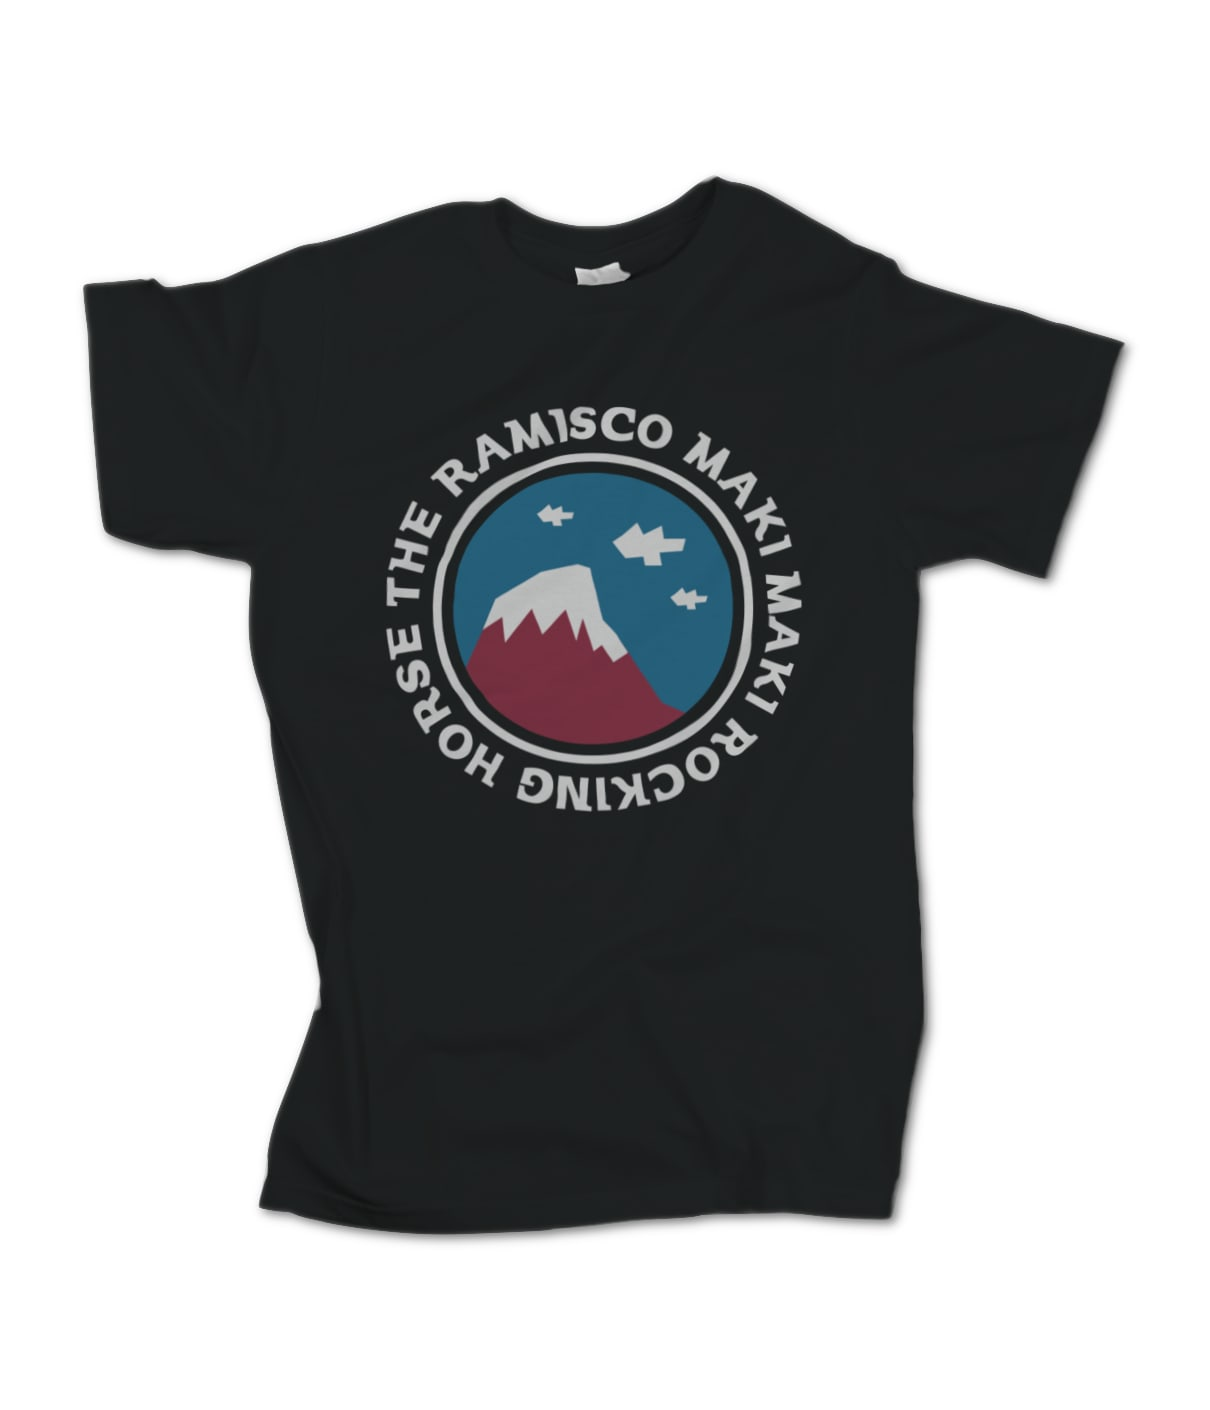 The Ramisco Maki Maki Rocking Horse T-Shirt